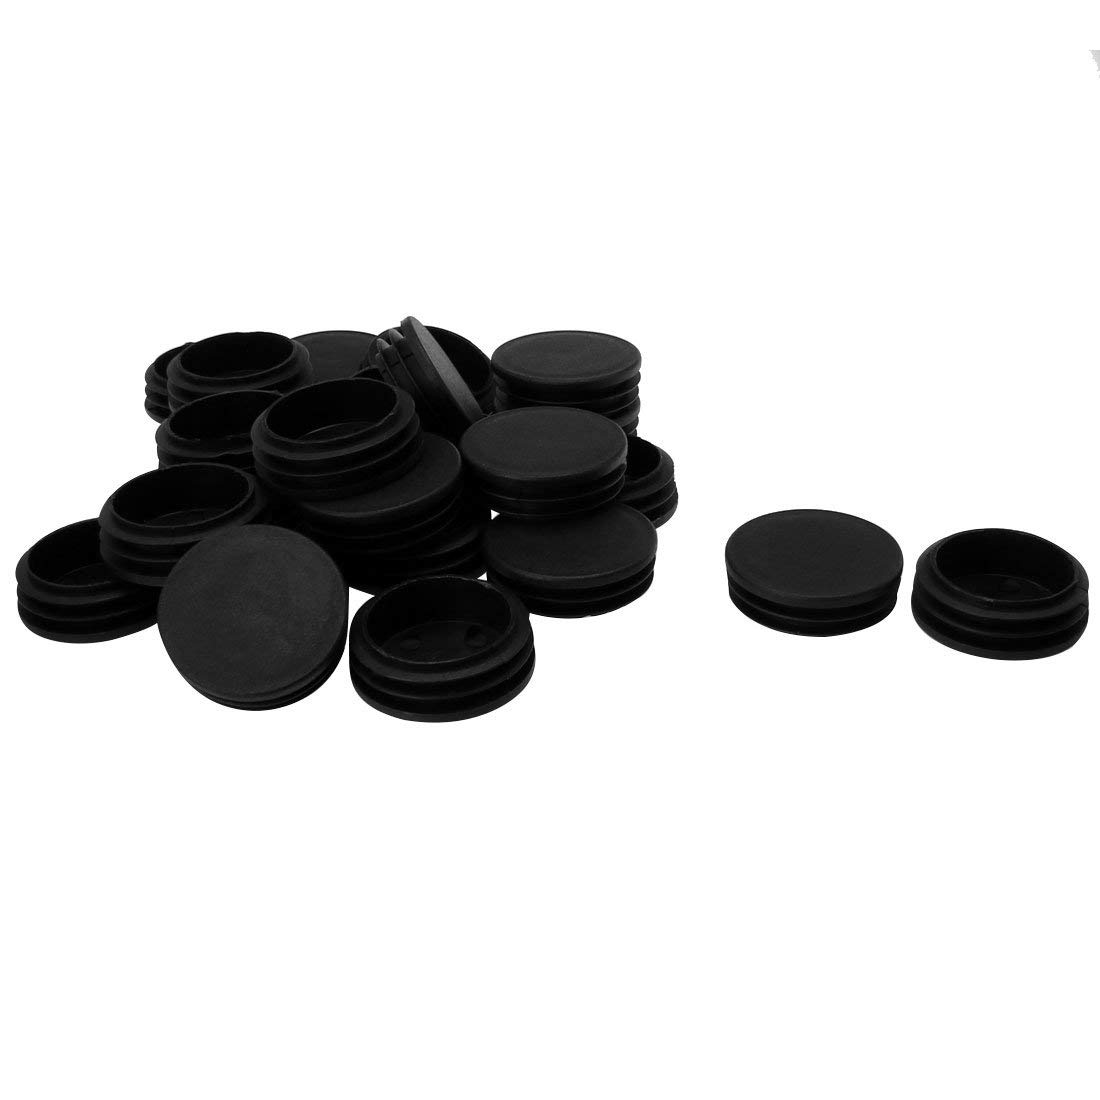 """uxcell 1 7/8"""" 48mm OD Plastic Round Tube Ribbed Inserts End Cover Caps 25pcs, 1.81""""-1.89"""" Inner Dia, Floor Furniture Chair Table Protector"""